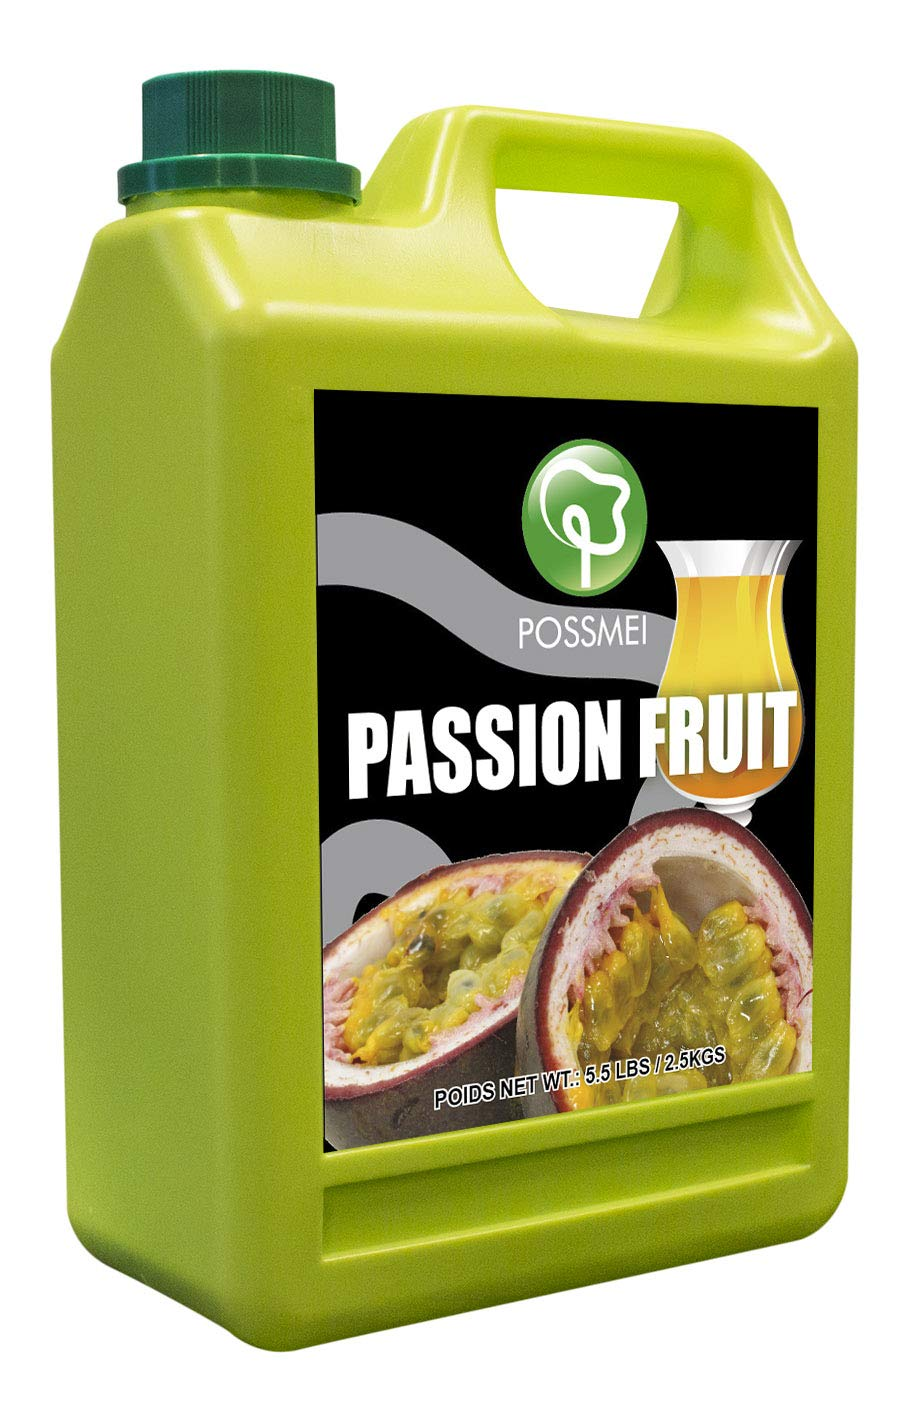 Possmei Flavored Syrup, Passion Fruit, 5.5 Pound